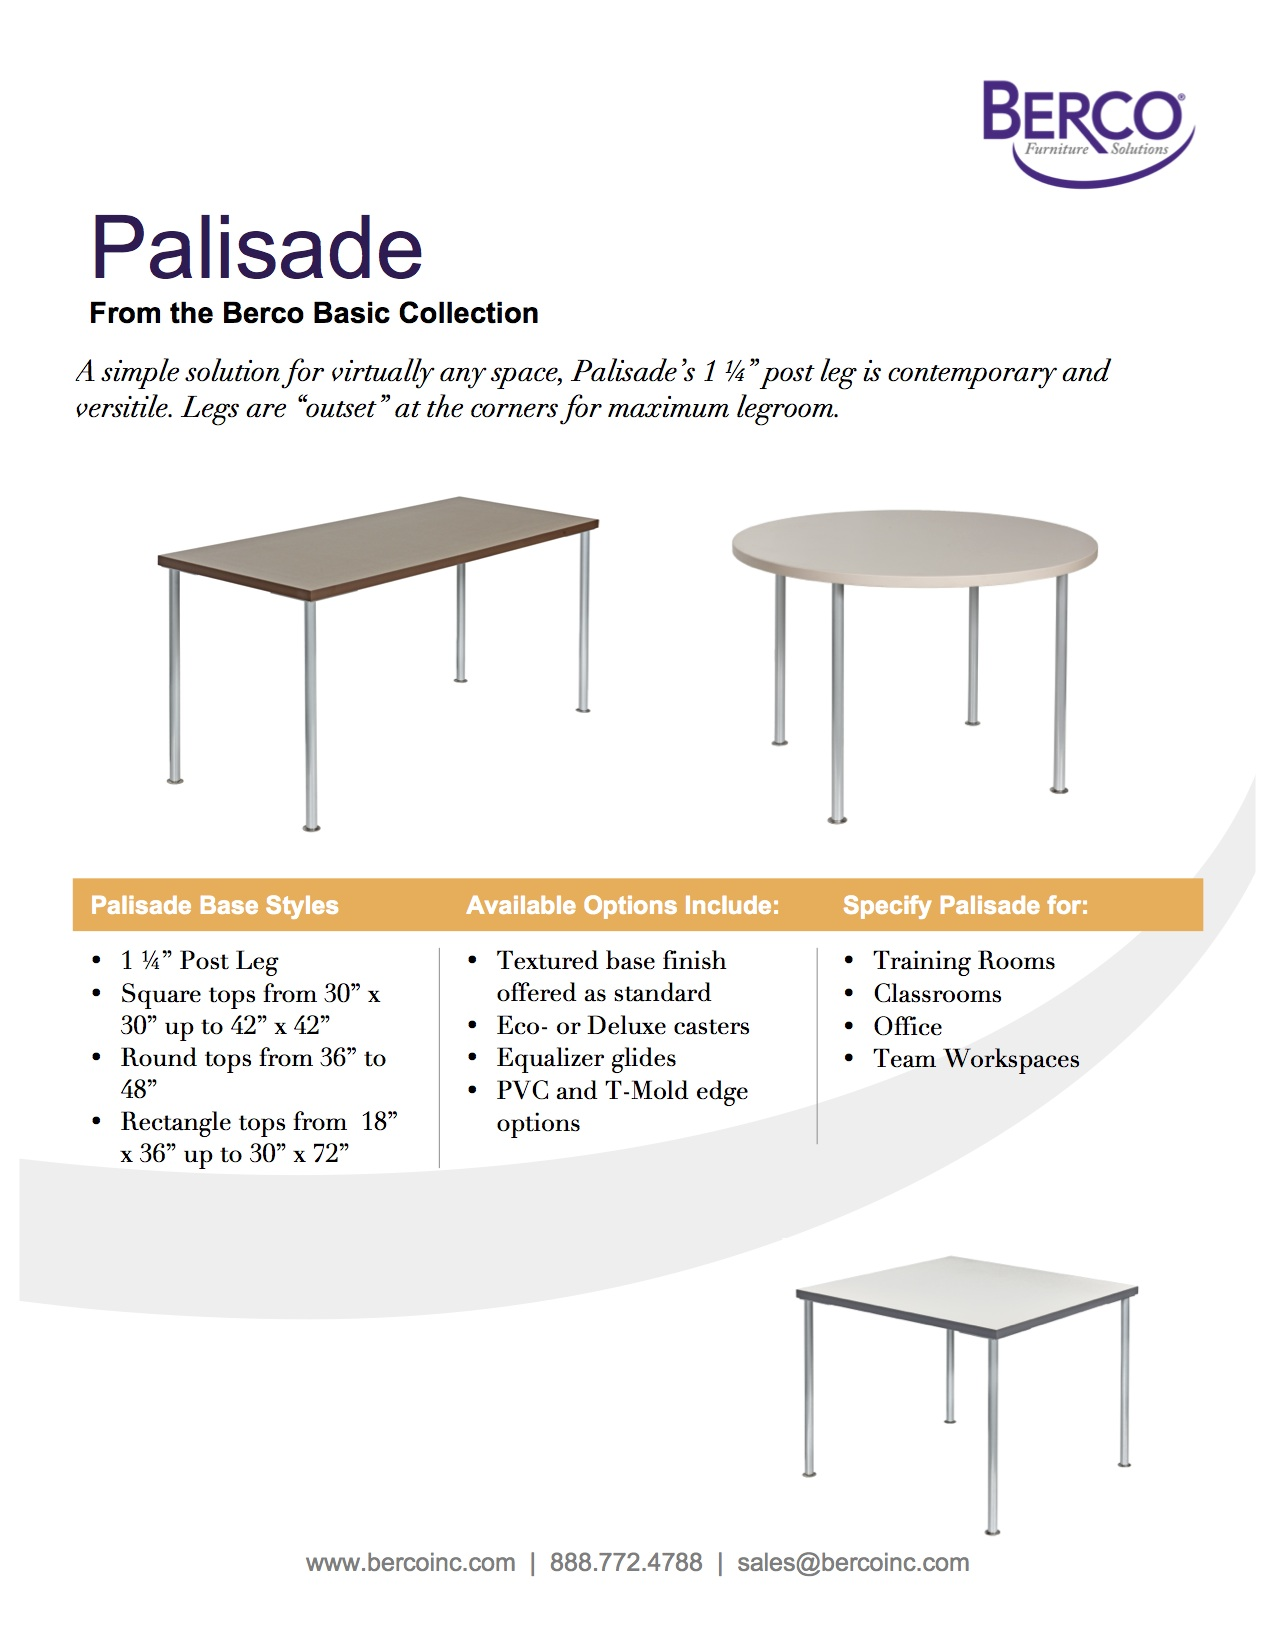 Palisade Sell Sheet